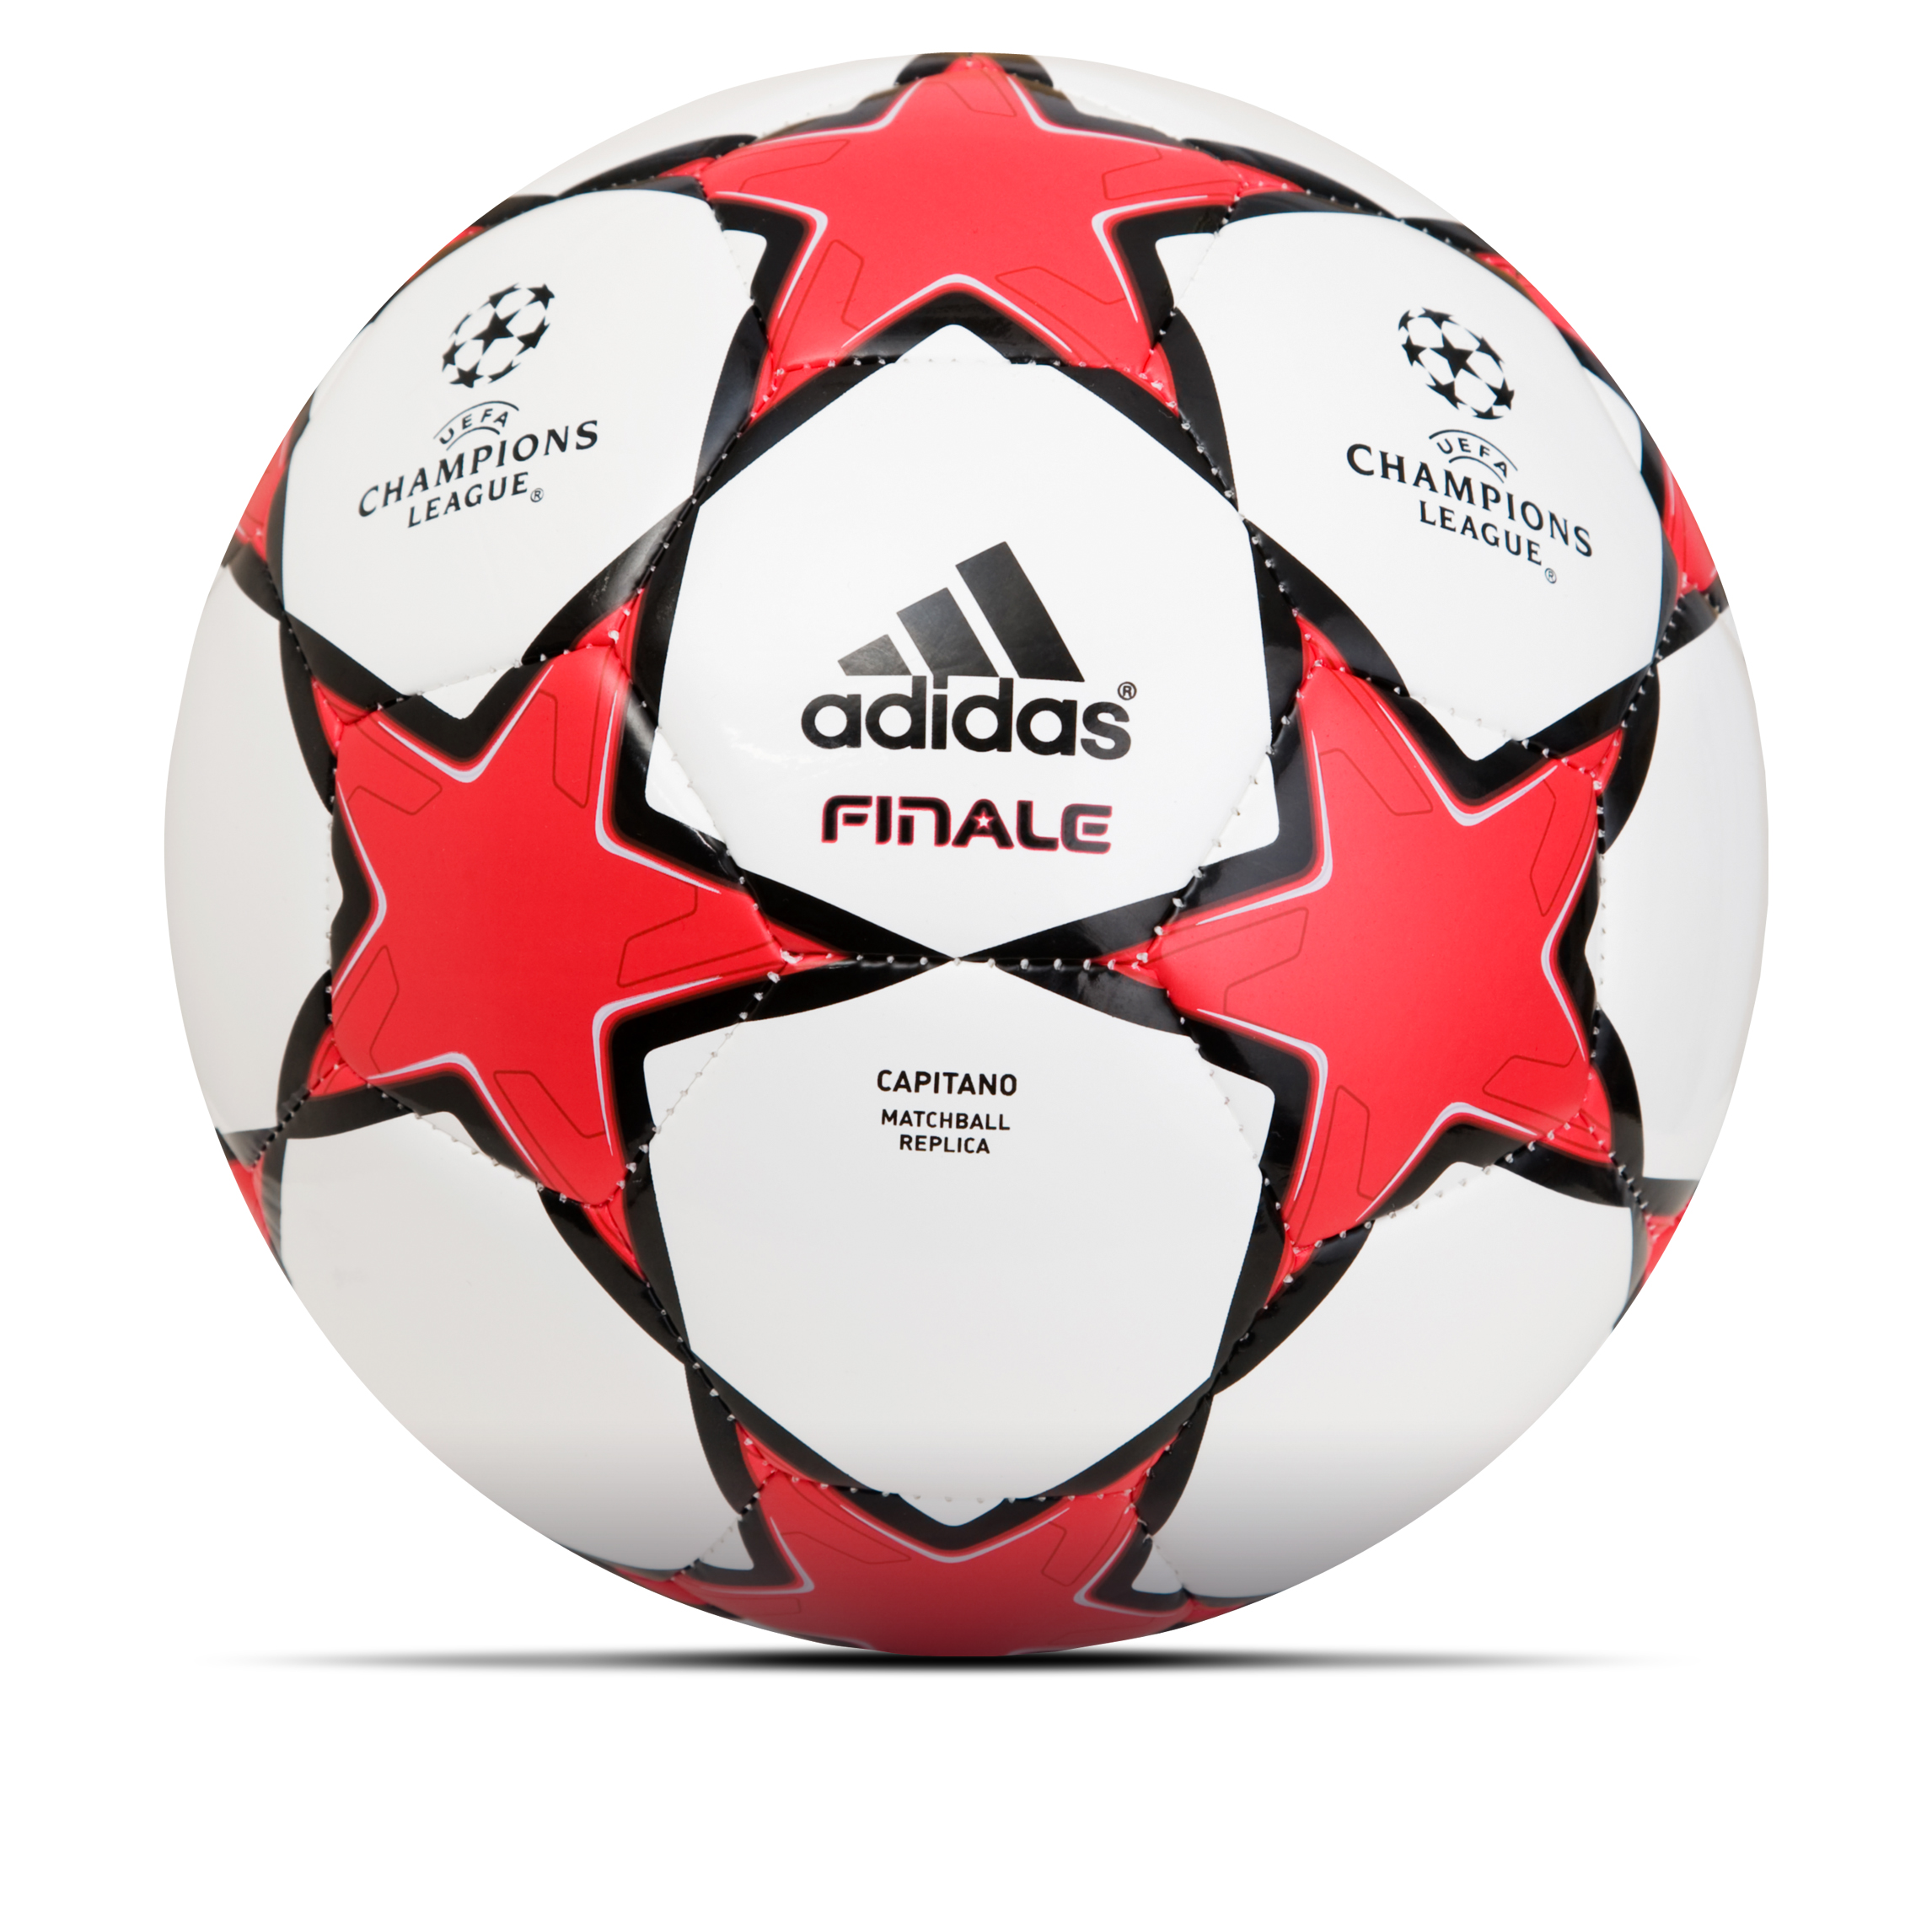 adidas Finale 10 Capitano Football - White/Radiant Red/Black